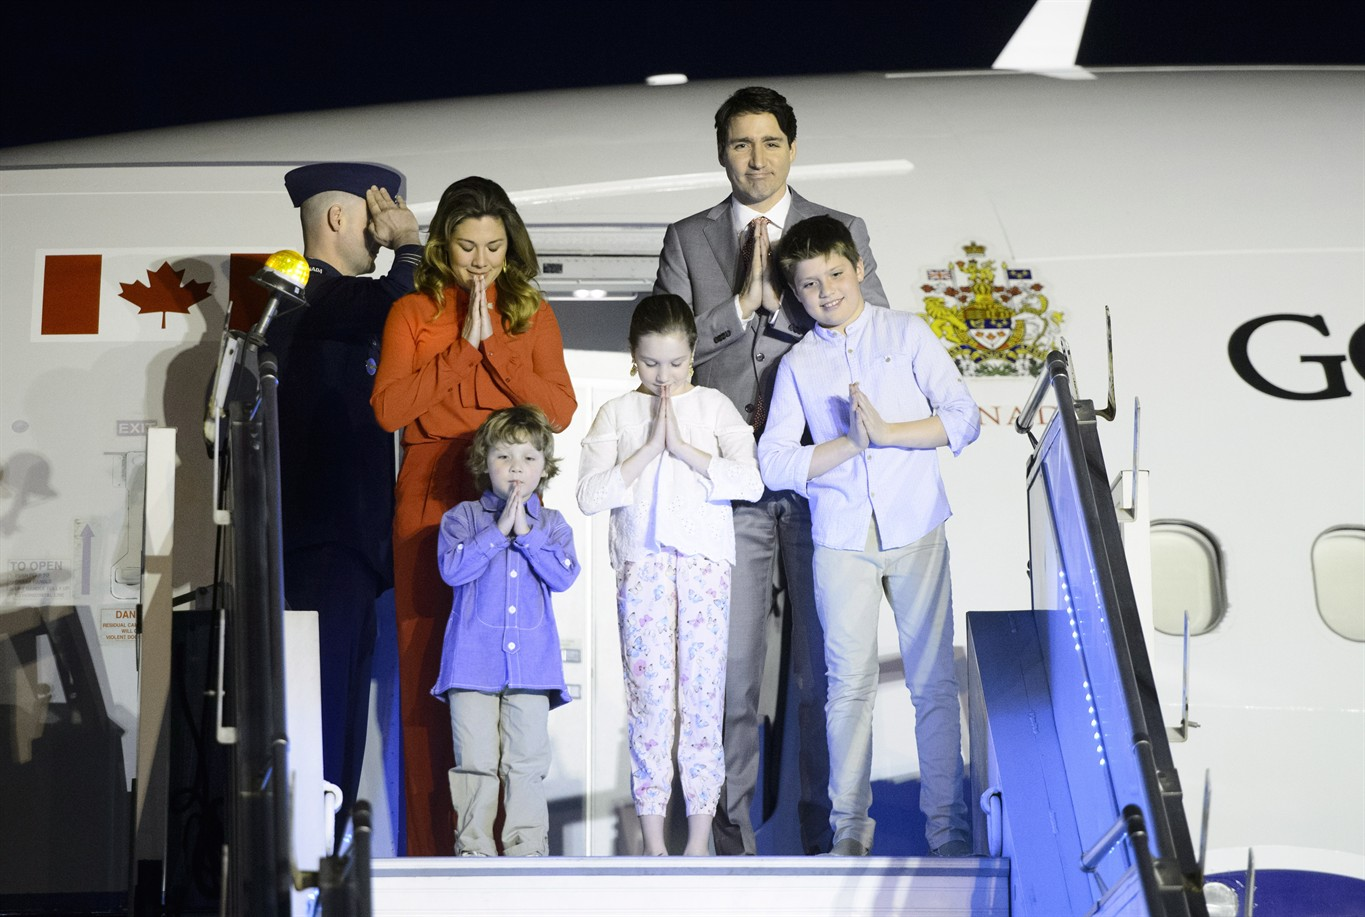 Pm Justin Trudeau Family Kick Off Indian State Visit